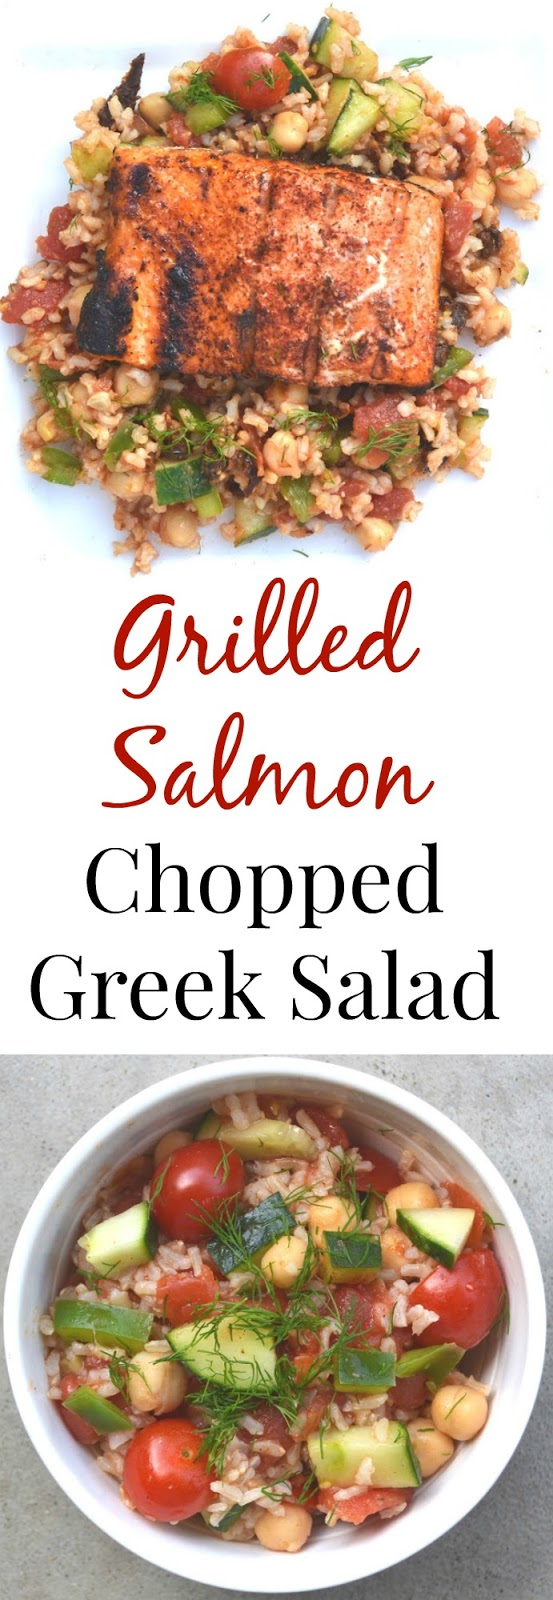 Grilled Salmon Chopped Greek Salad- a flavor packed meal loaded with vegetables and brown rice. www.nutritionistreviews.com